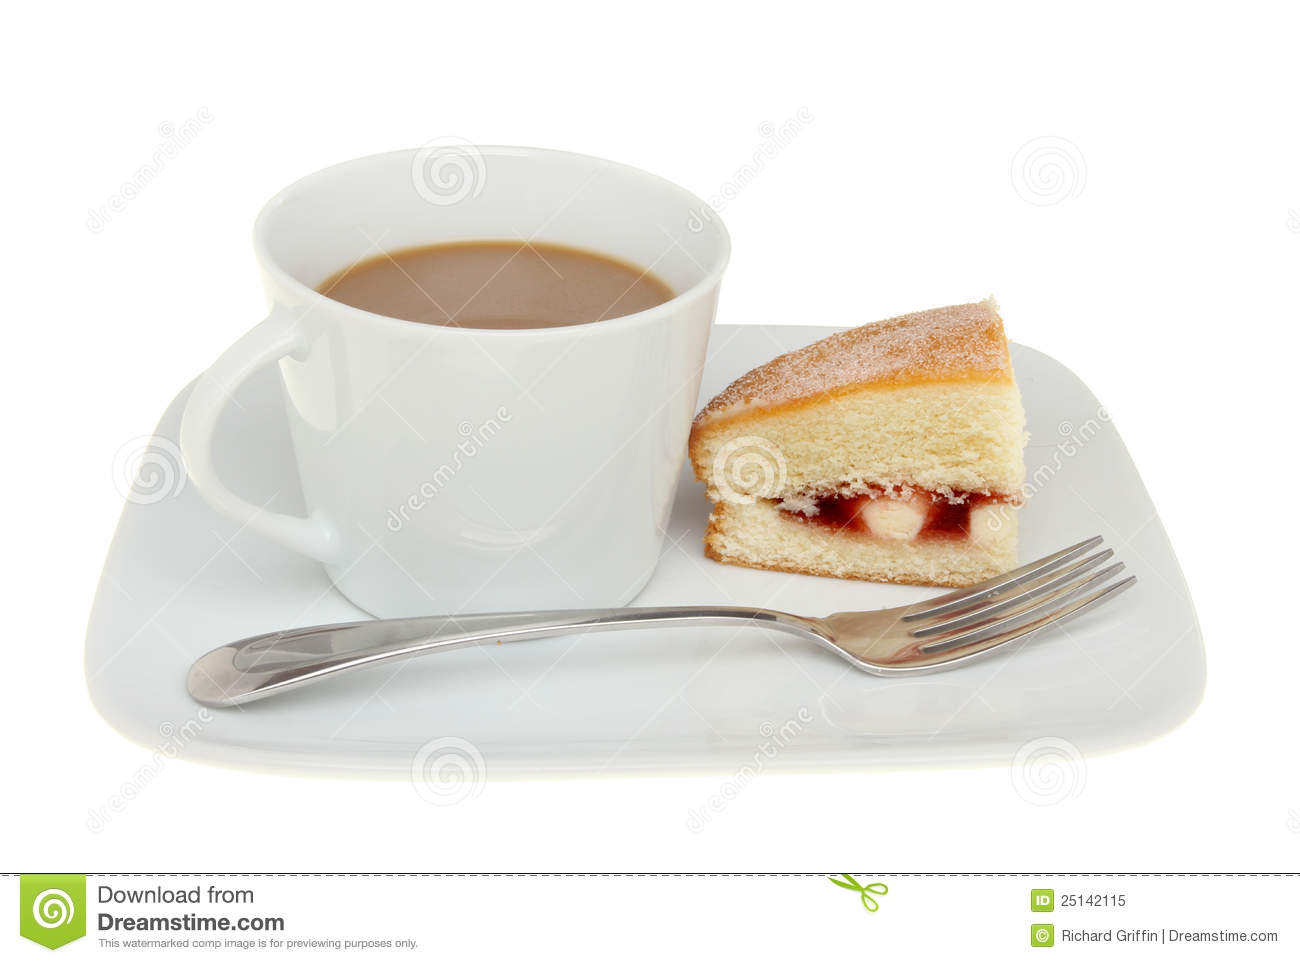 clipart coffee and cake - photo #36